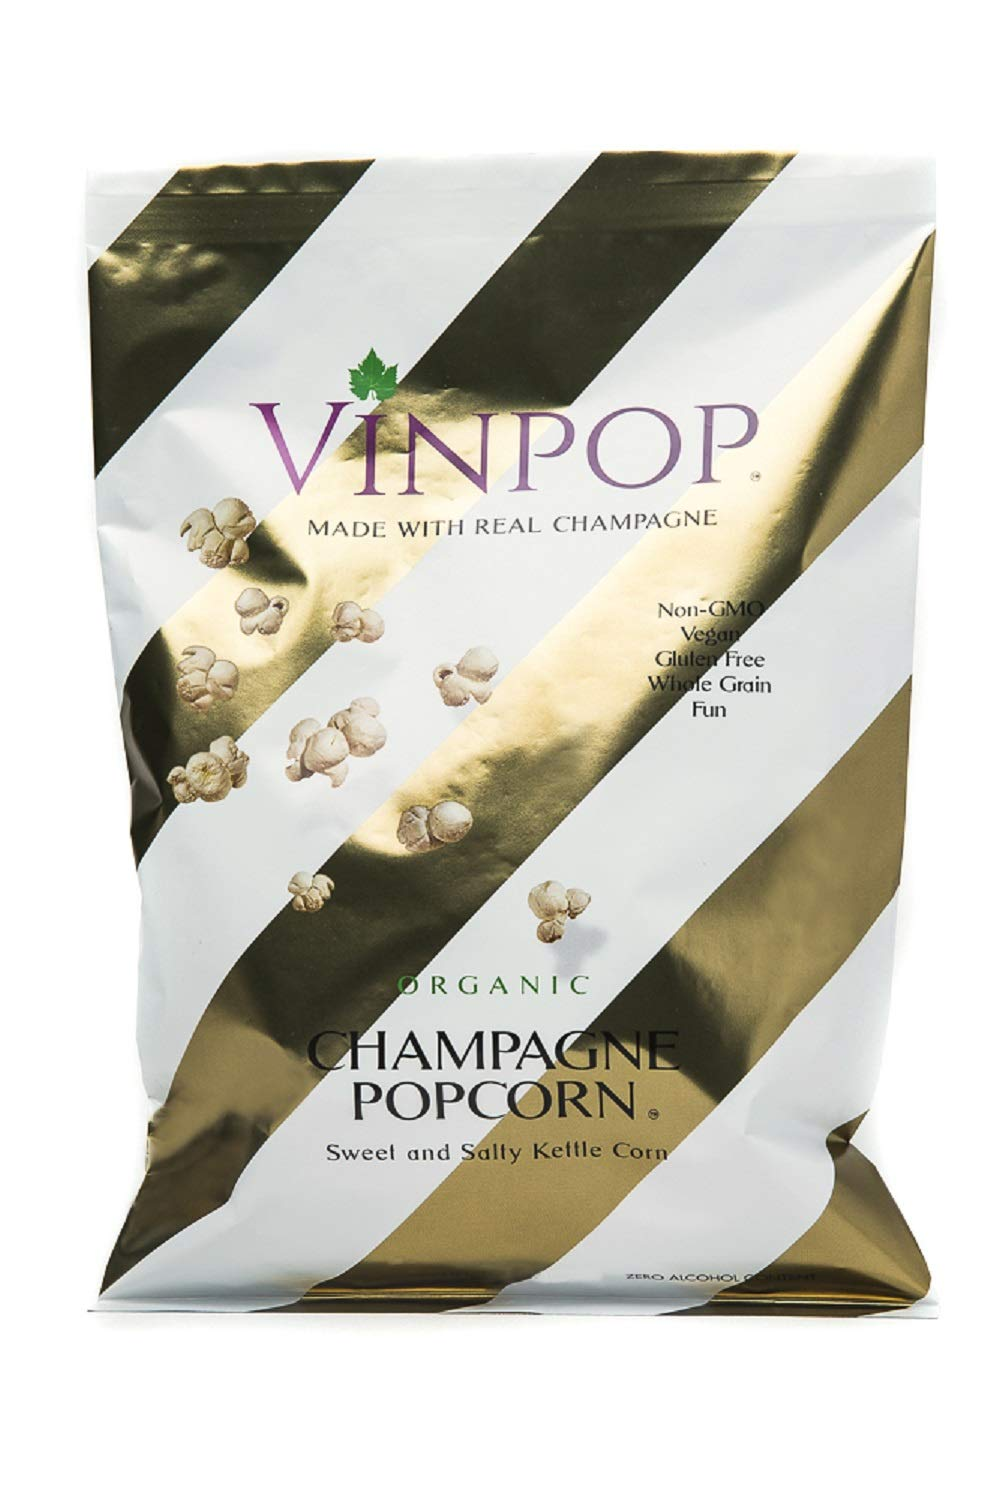 VINPOP Organic Popcorn - Champagne 2 Ounce 5 w Bag overseas Pack Now on sale Made